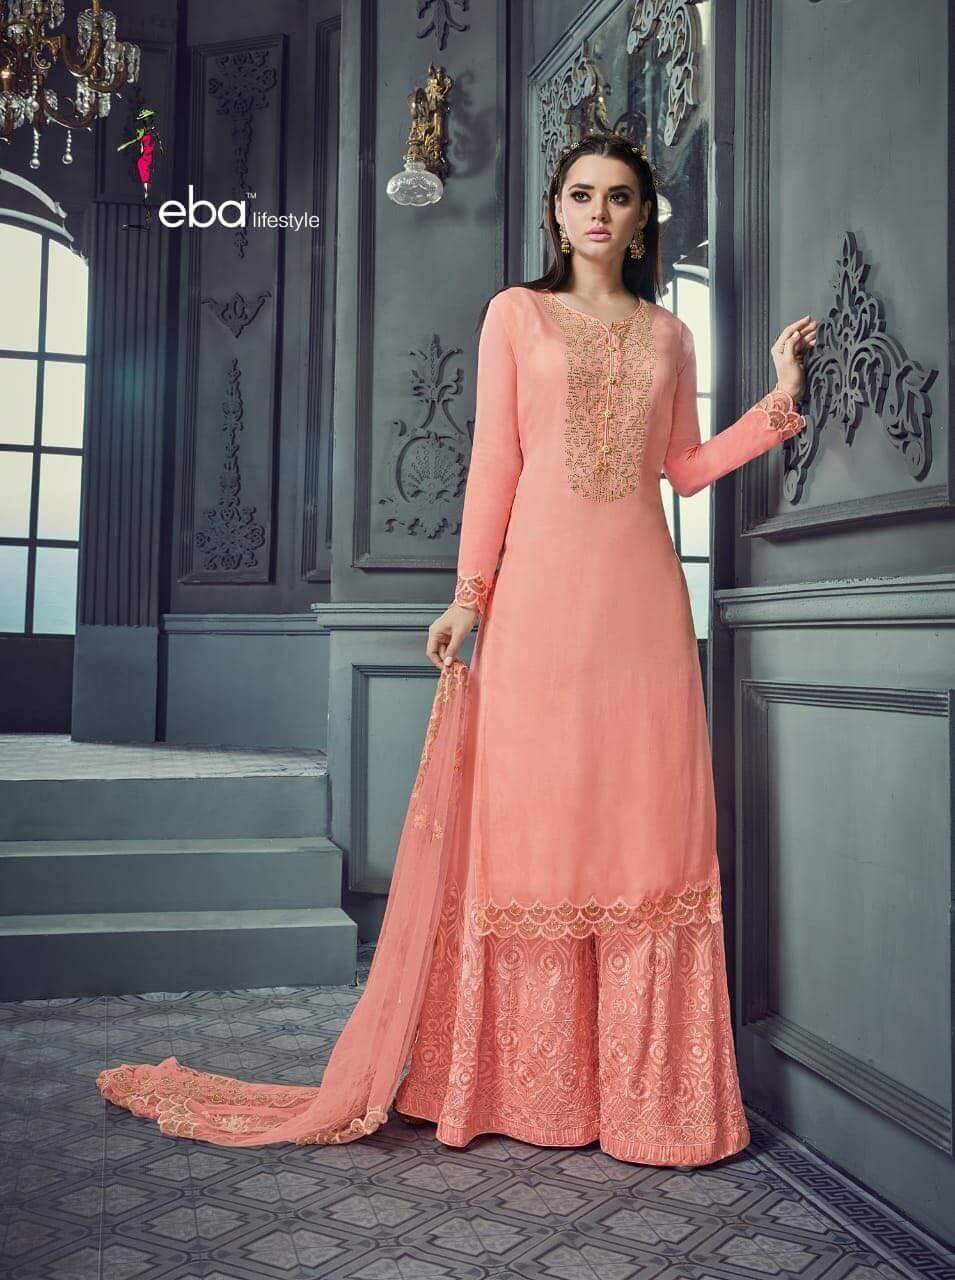 Eba Hurma Vol 2 collection 3